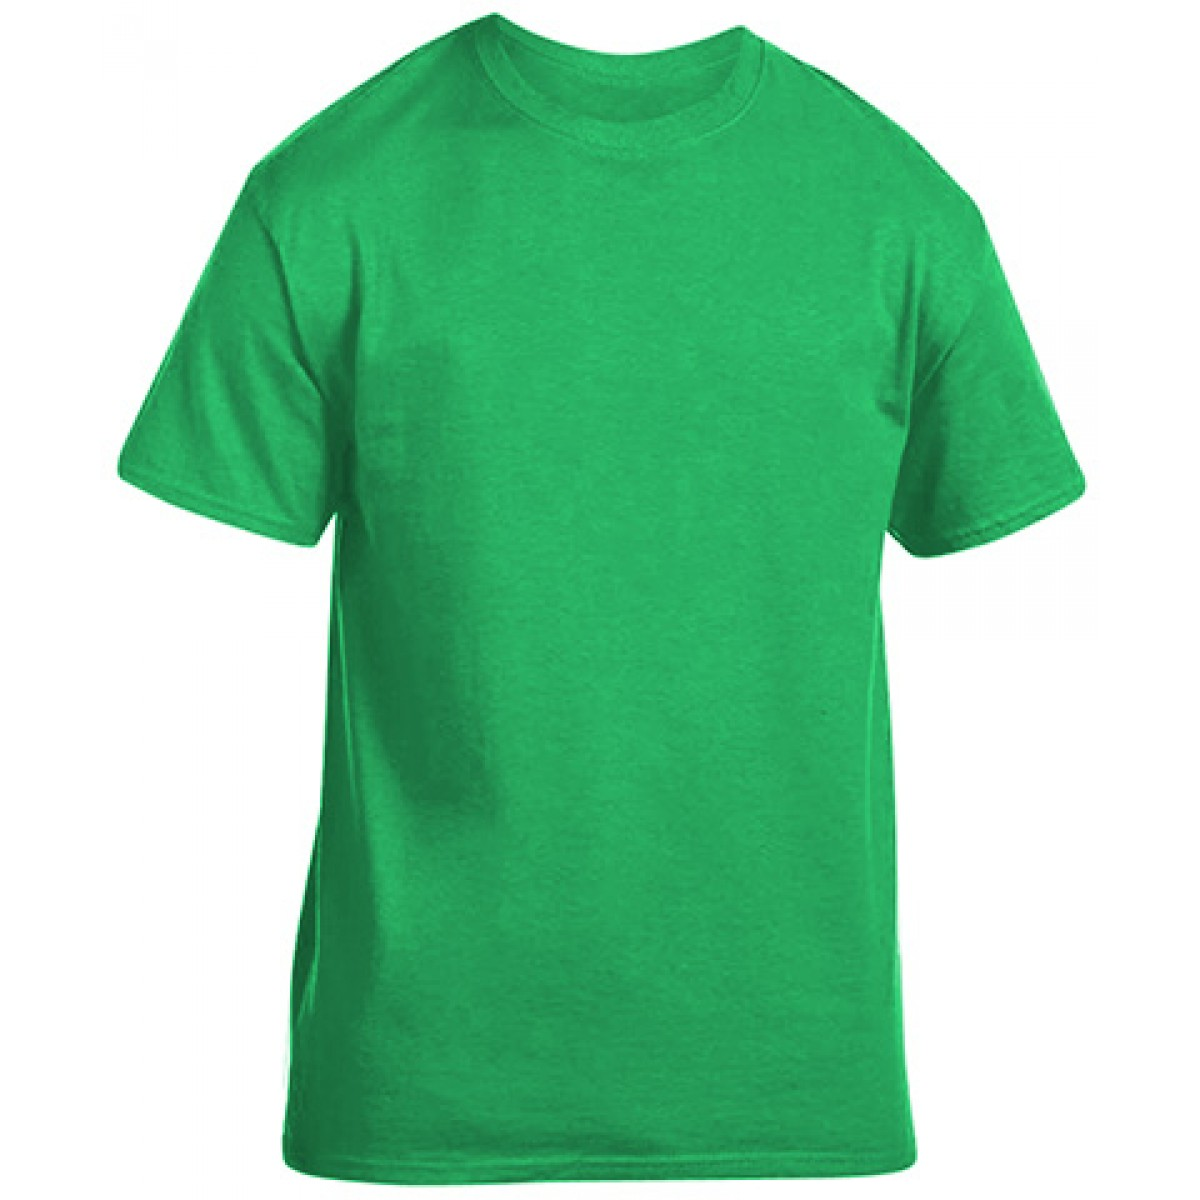 Soft 100% Cotton T-Shirt-Electric Green -2XL